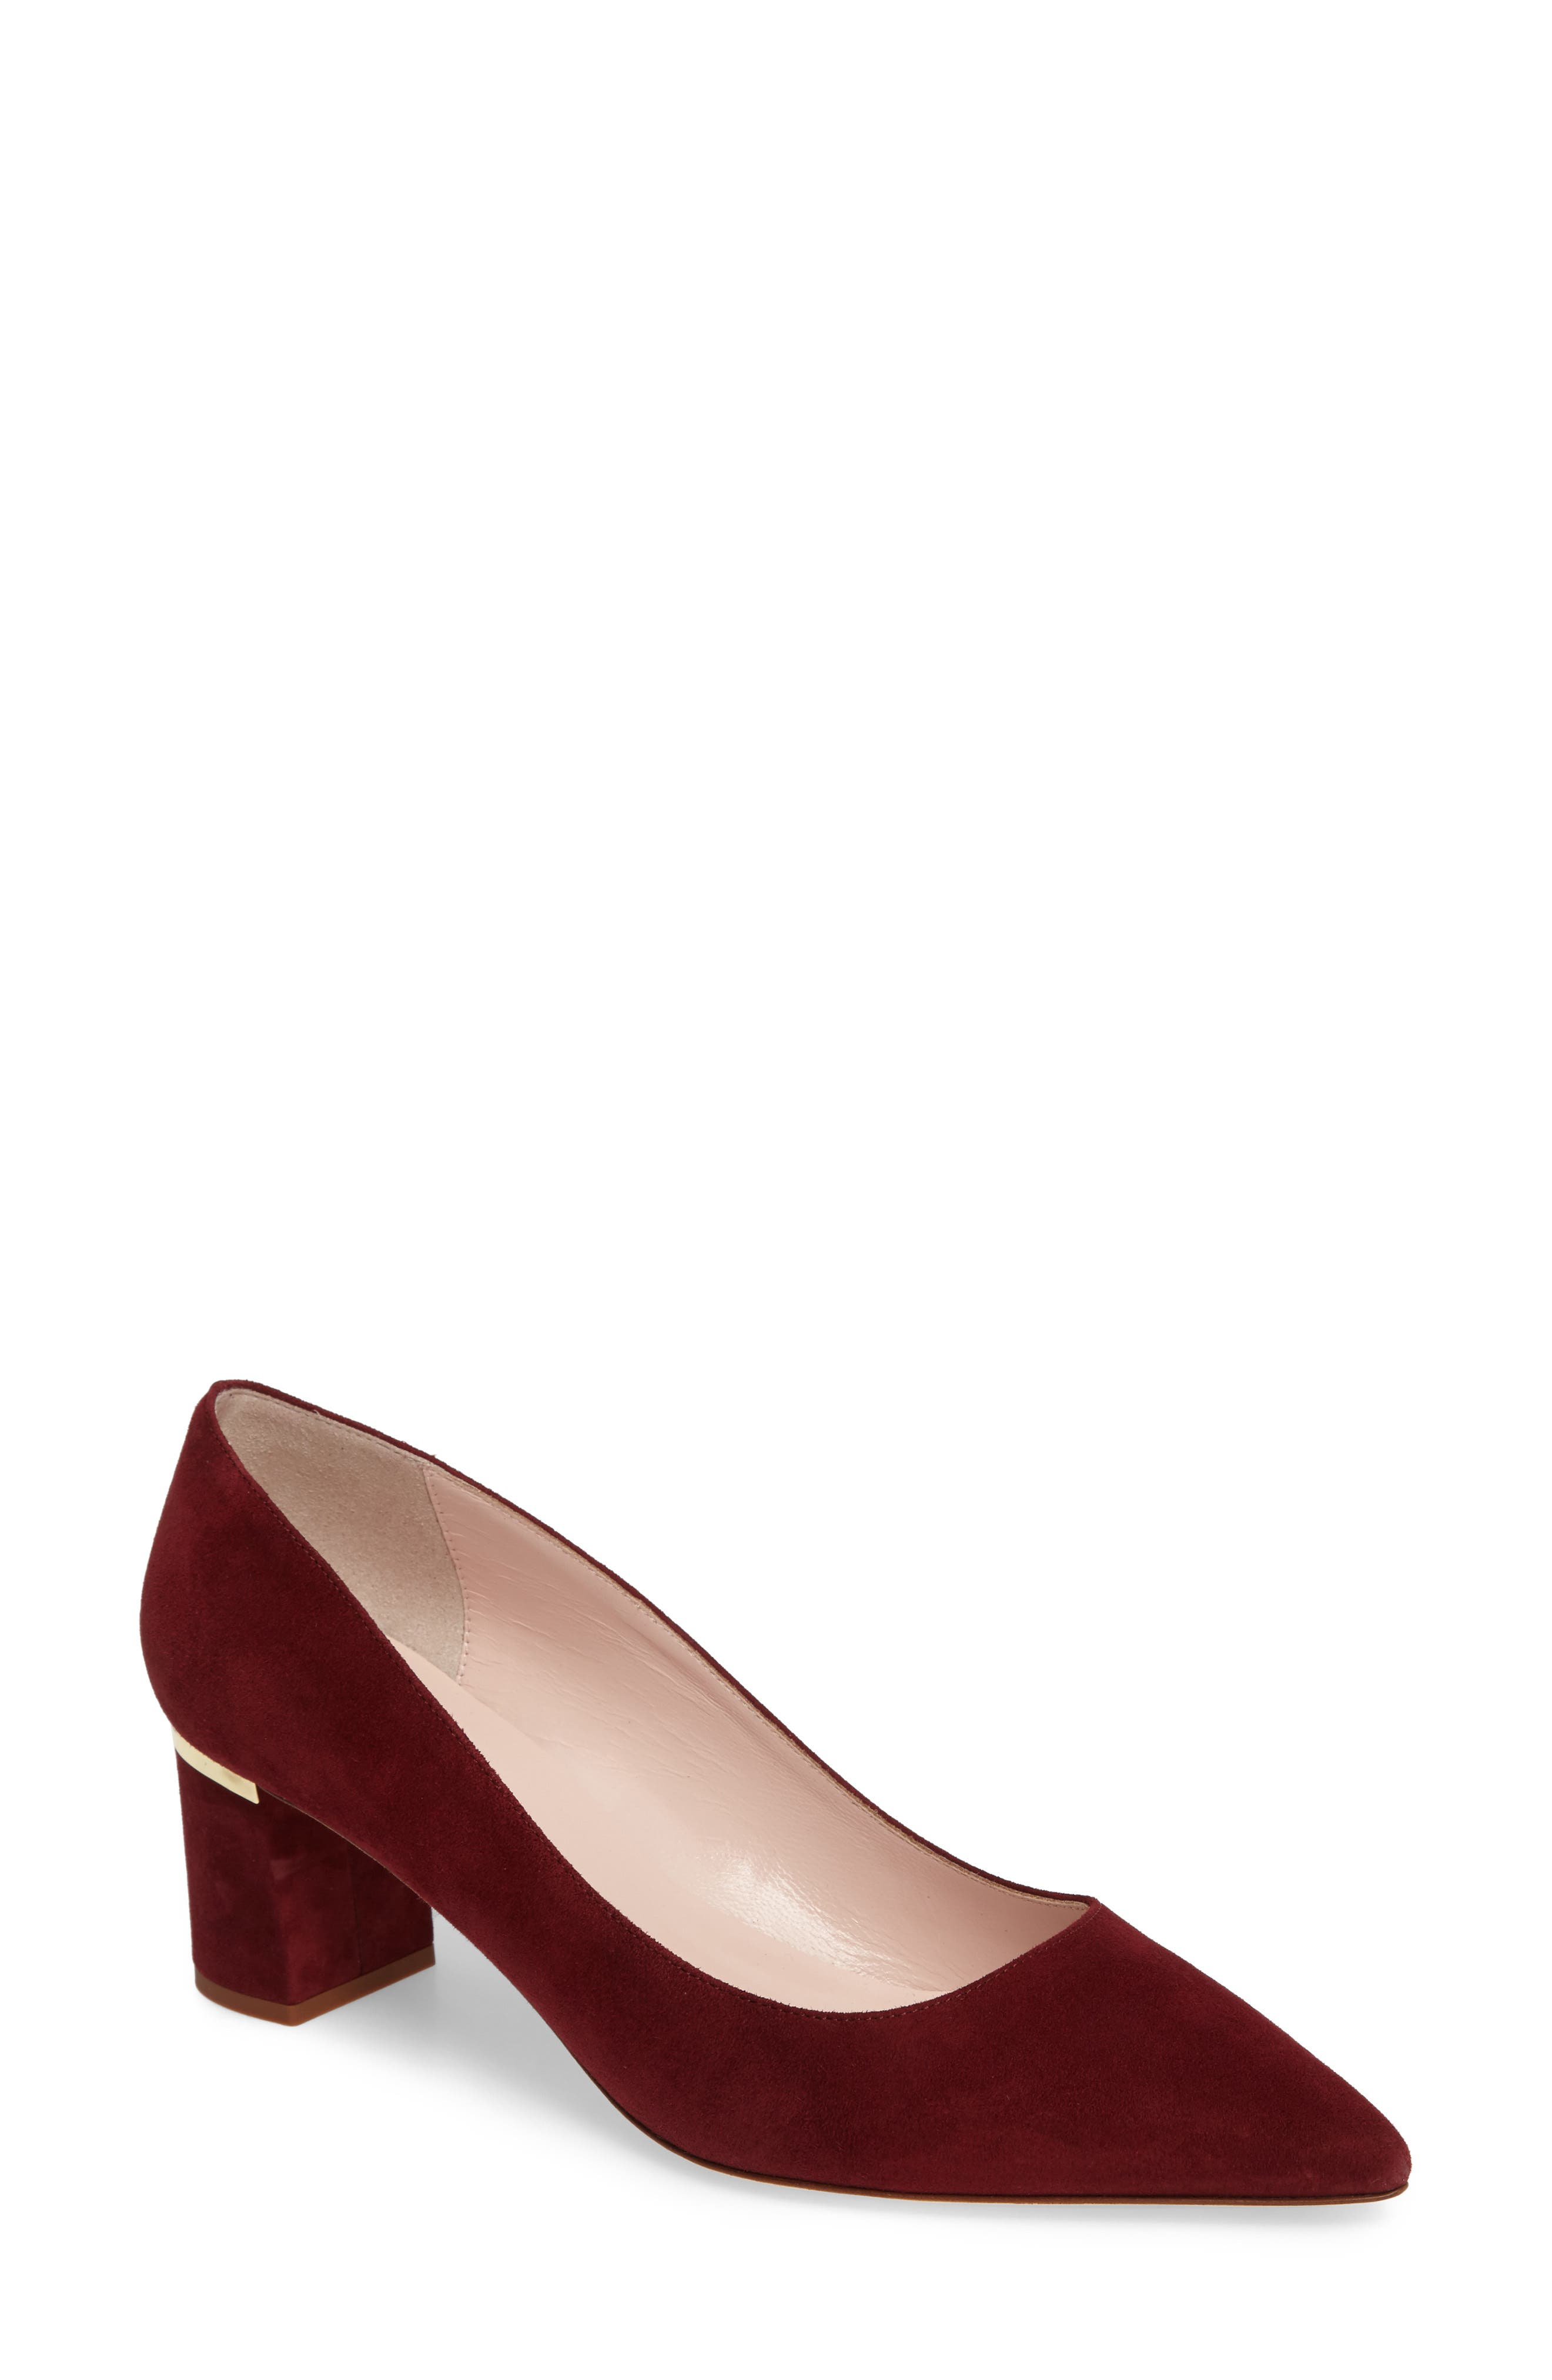 KATE SPADE NEW YORK milan too pointy toe pump